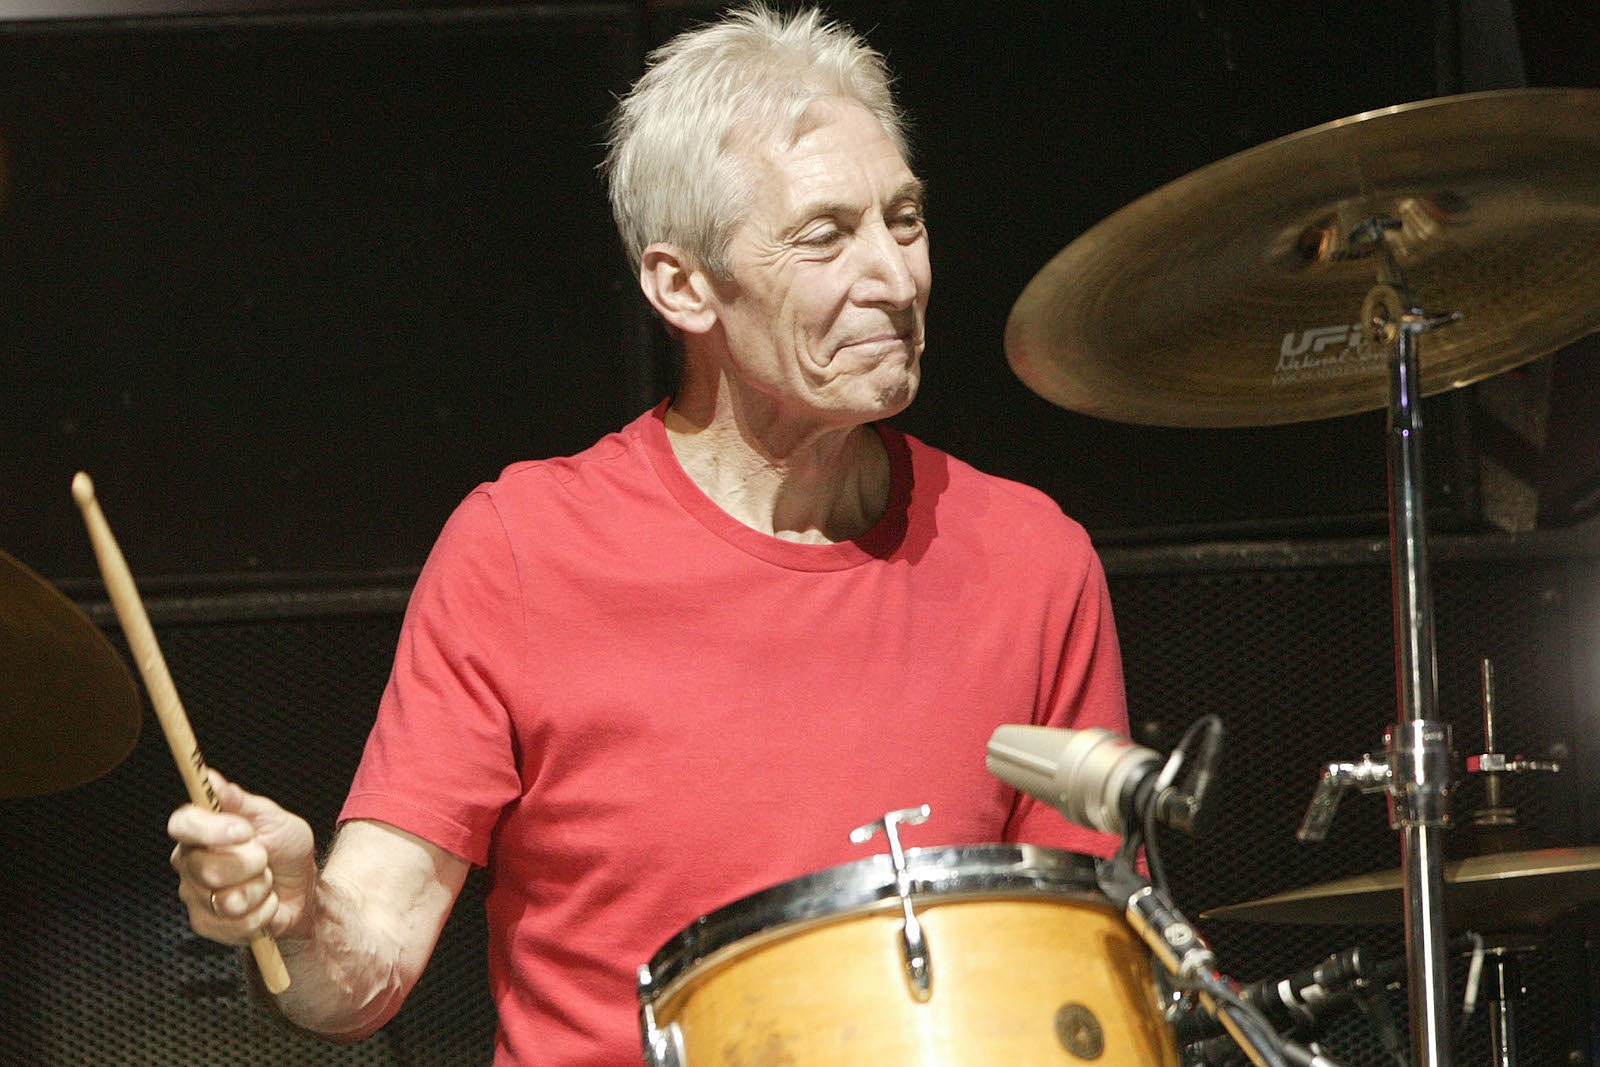 Charlie Watts 'Unlikely To Be Available' for Rolling Stones Tour